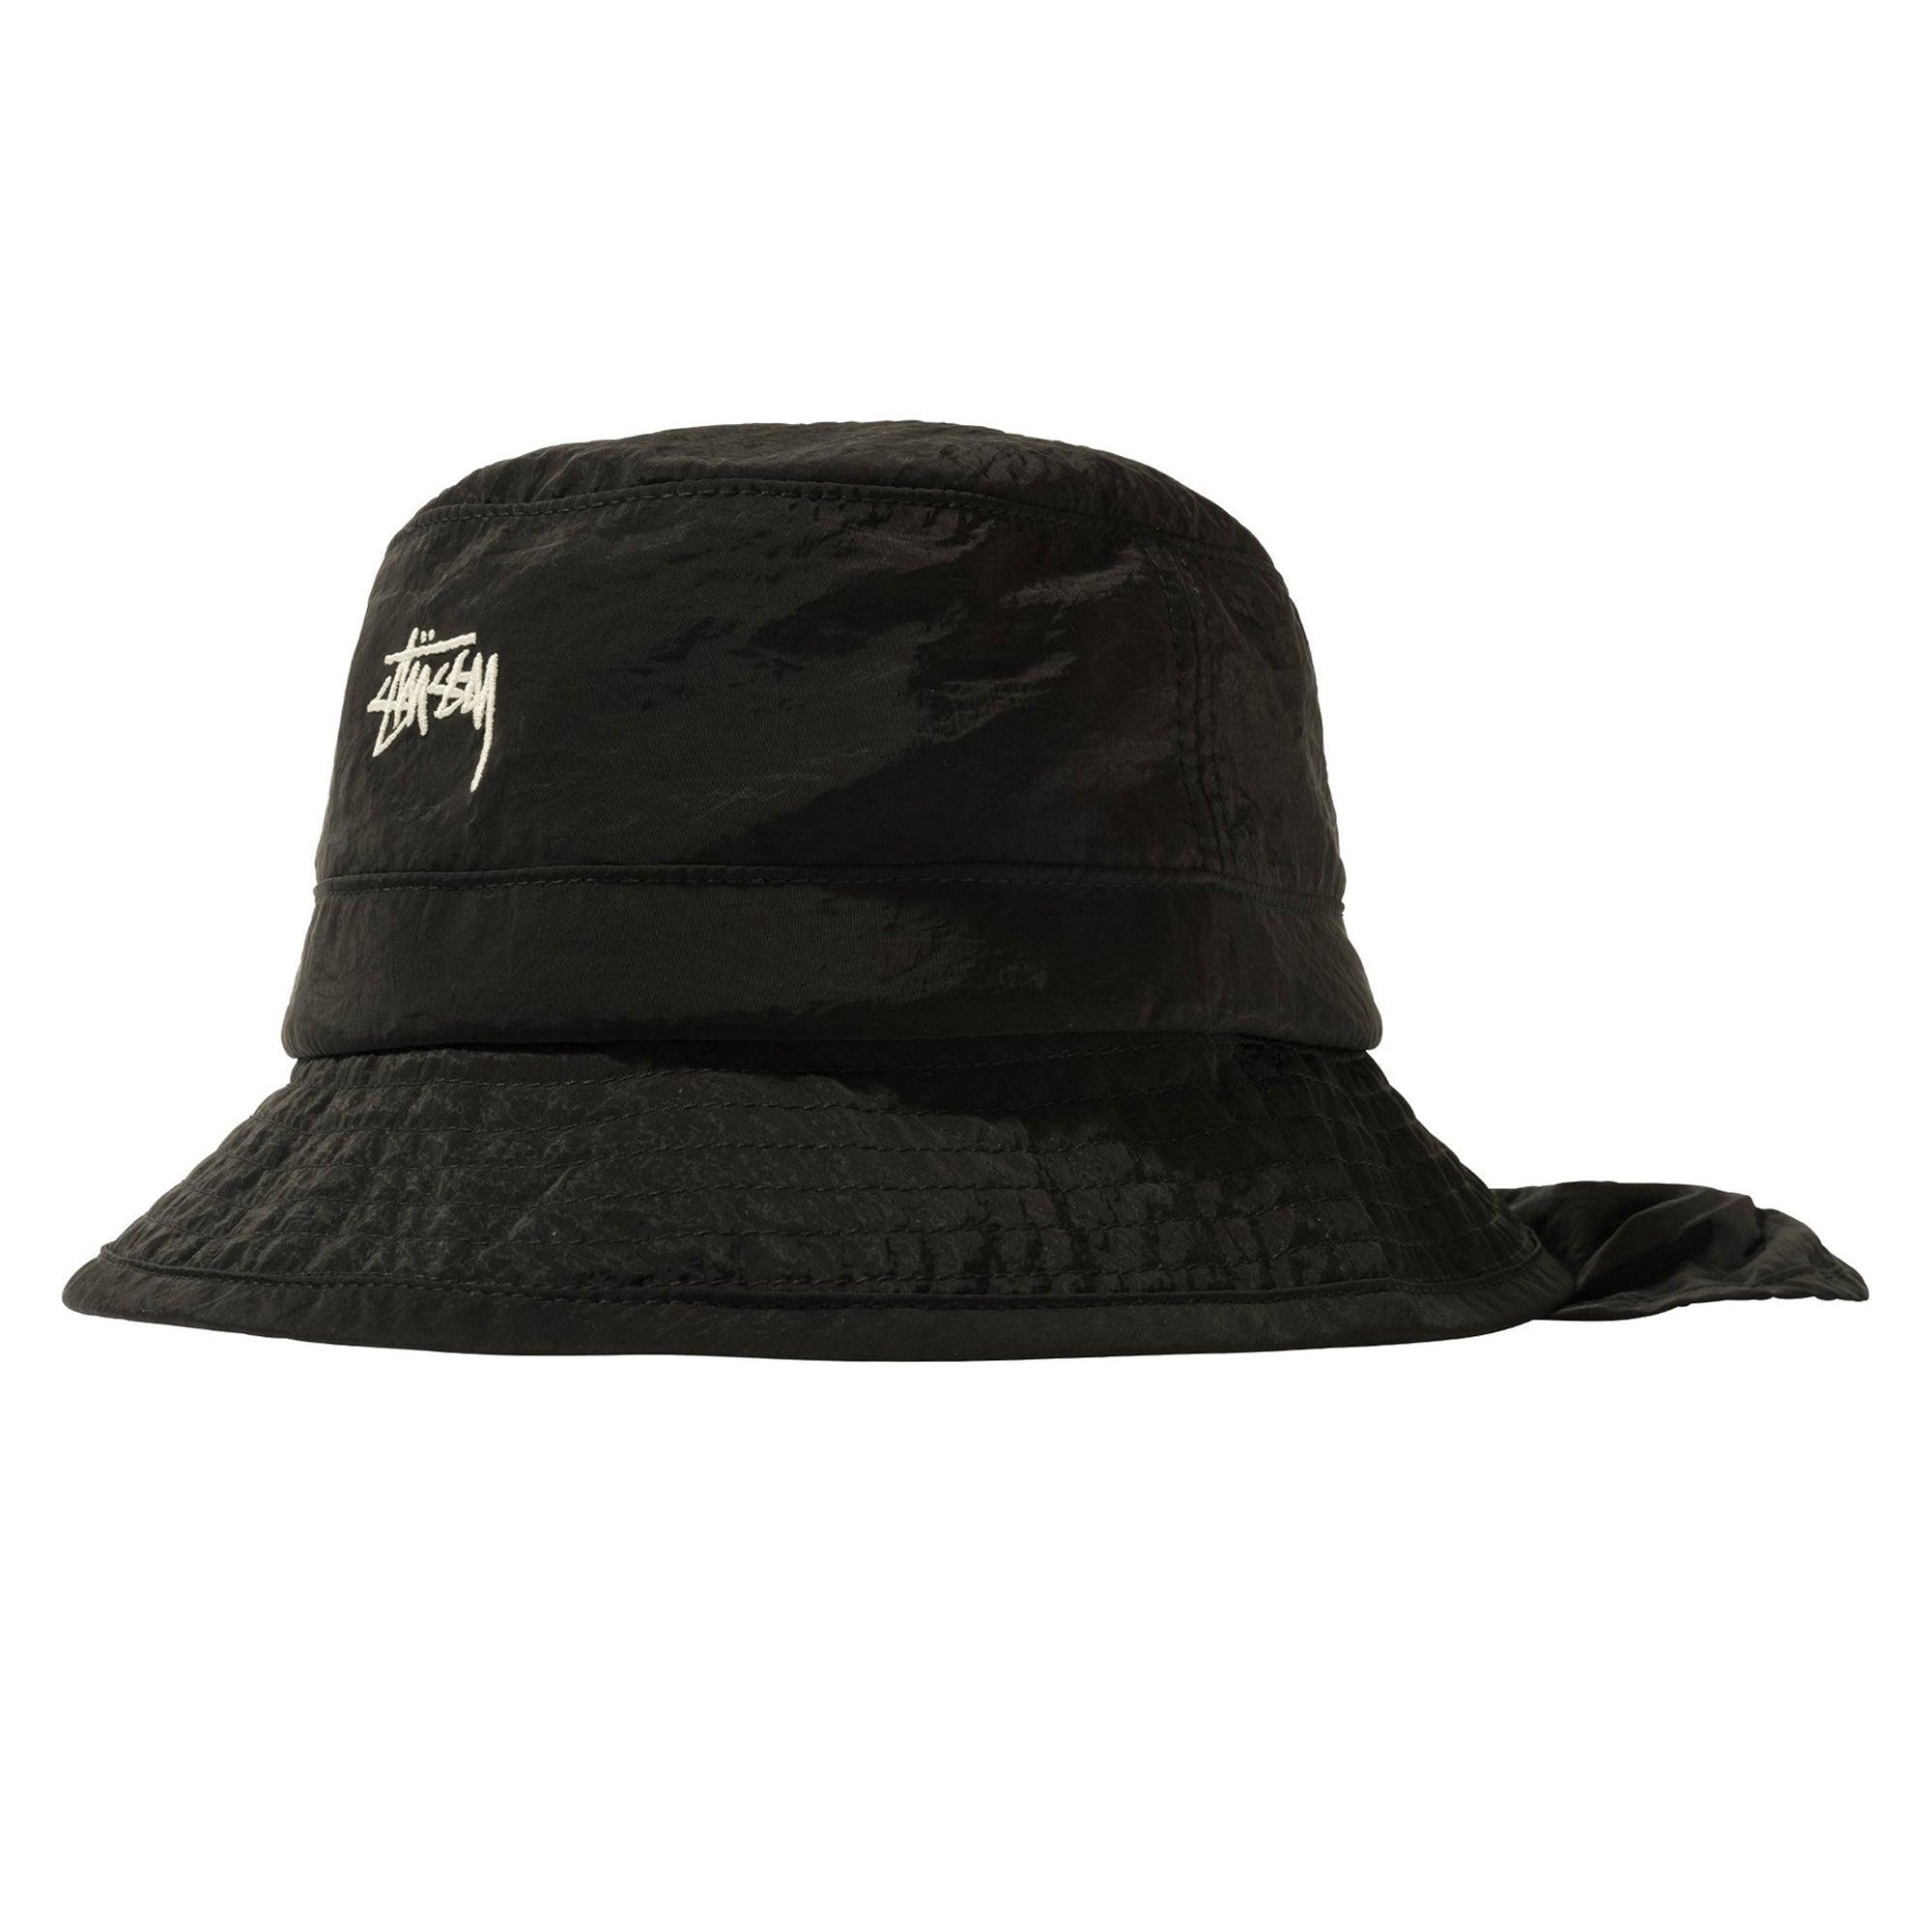 Stussy Metallic Nylon Bungee Bucket Hat Black